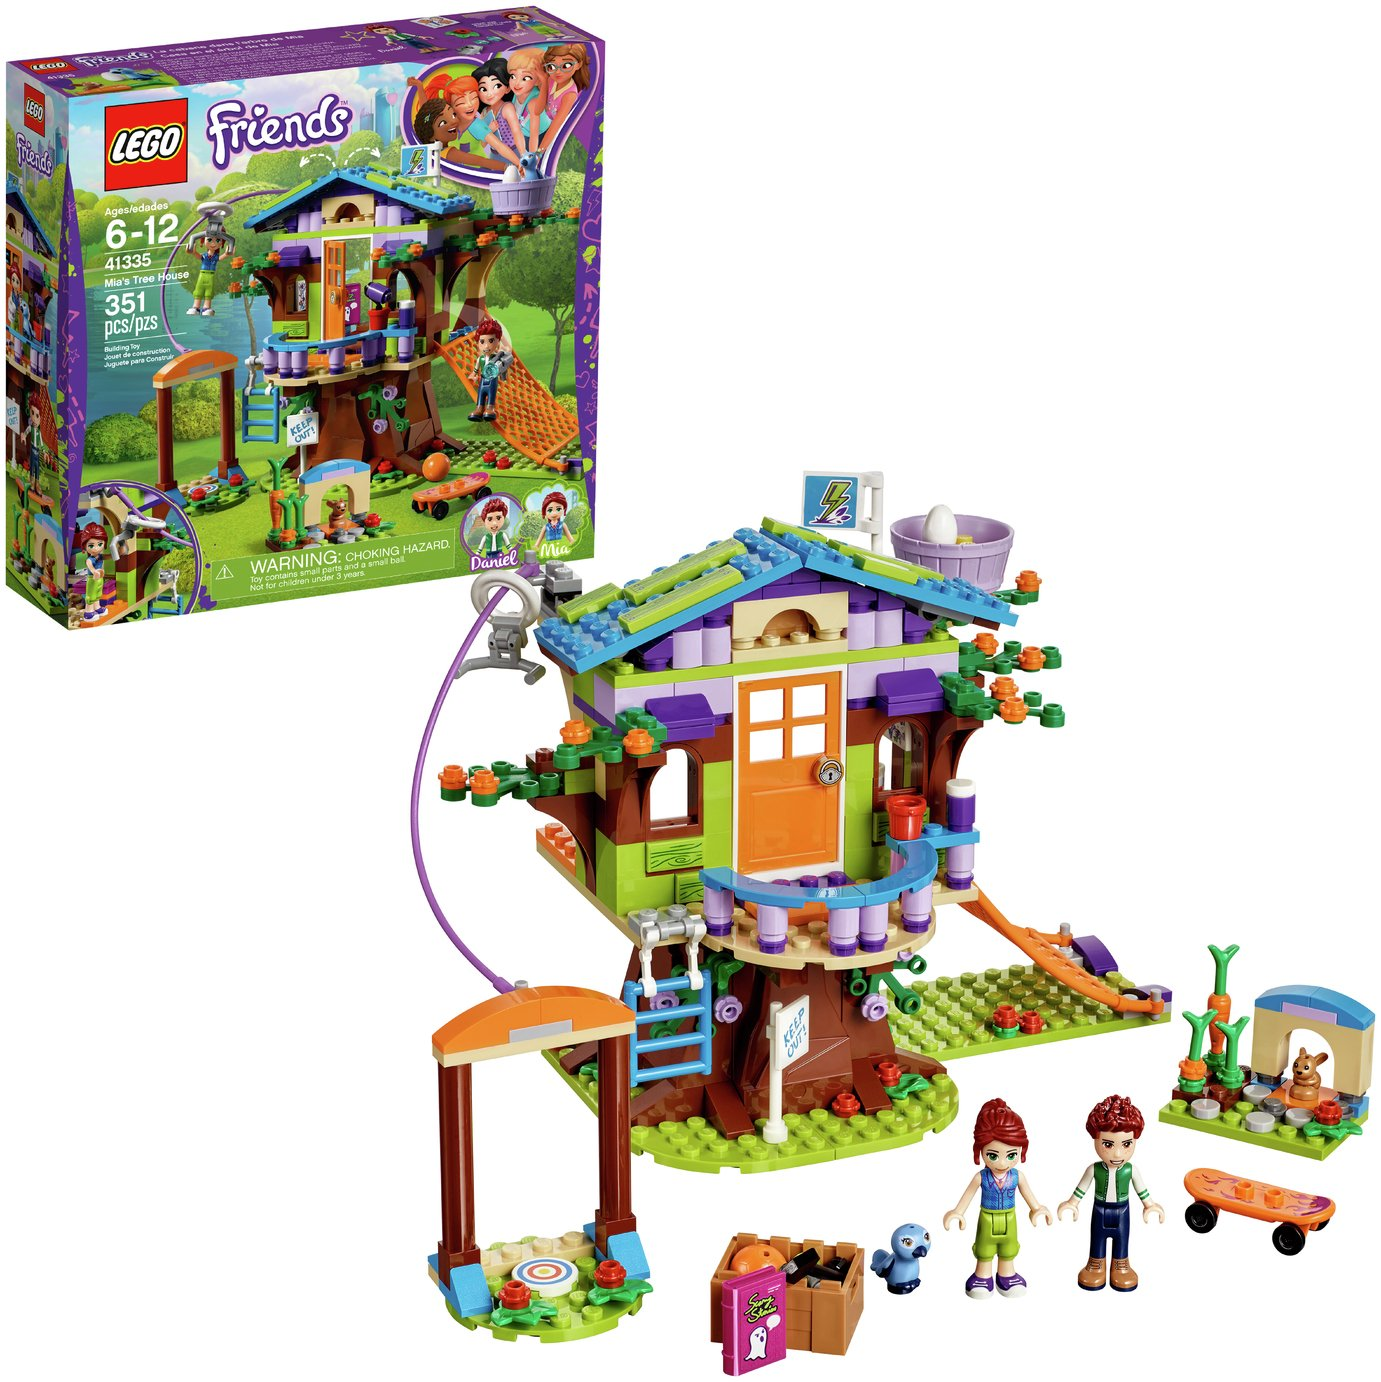 LEGO Friends Heartlake Mia's Tree House Building Set   41335